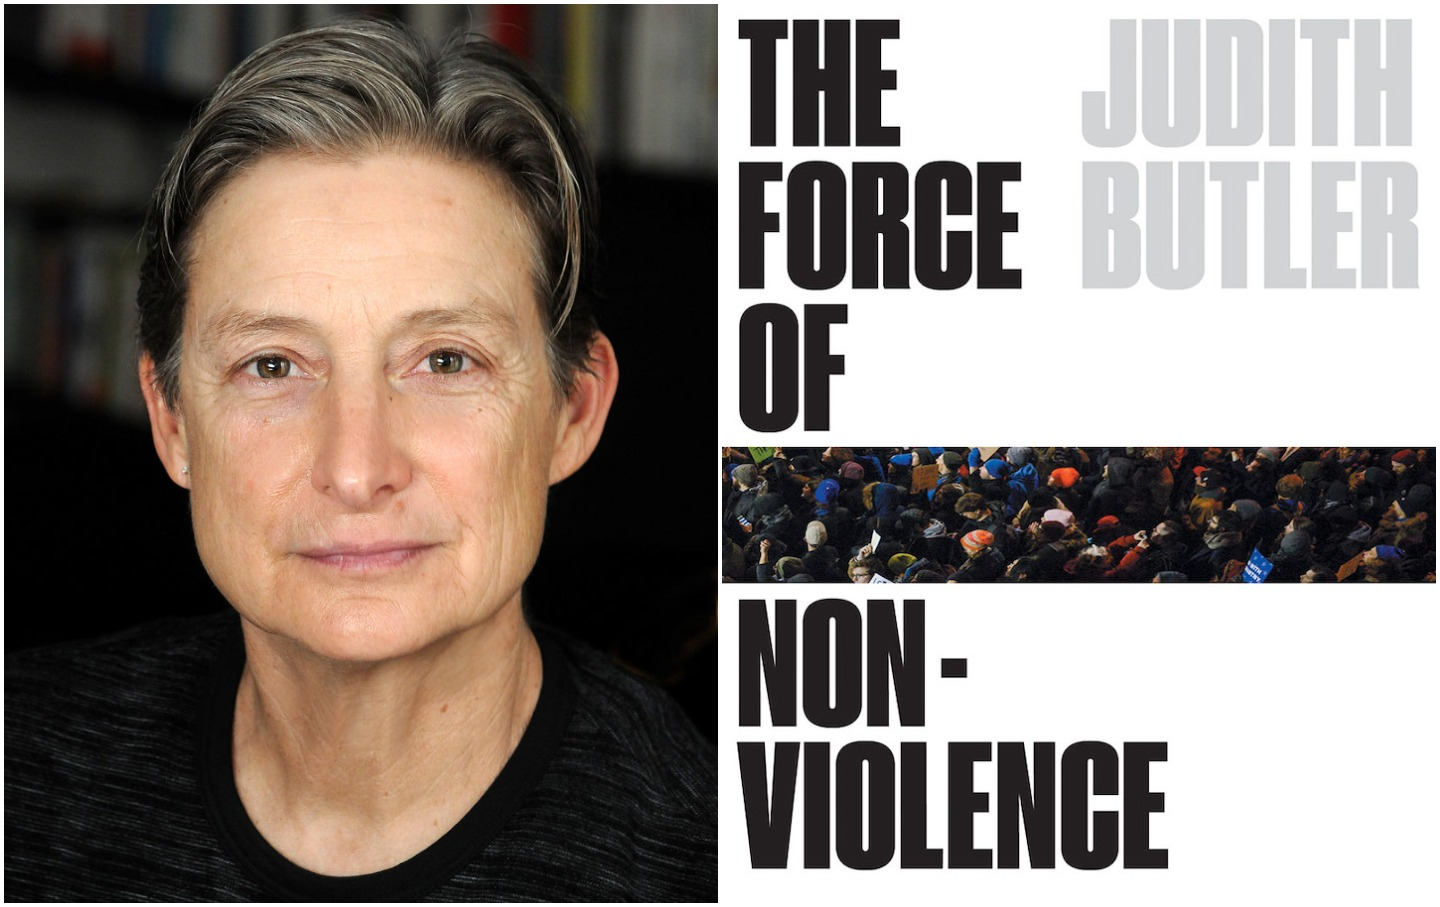 مراجعة لكتاب Judith Butler. The Force of Nonviolence. Verso. 2020